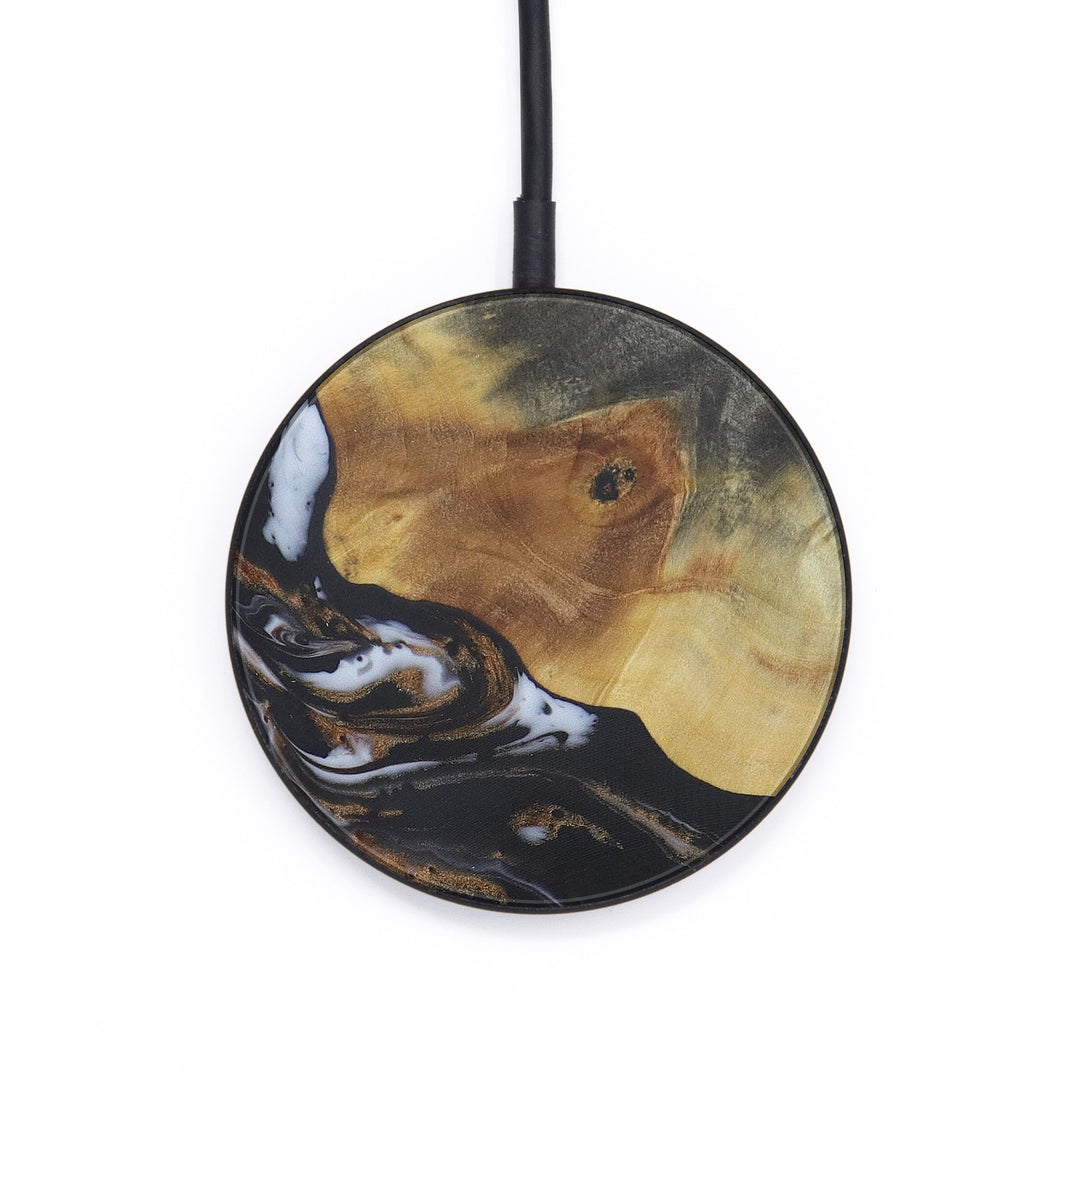 Circle Wood+Resin Wireless Charger - Chastity (Black & White, 406716)